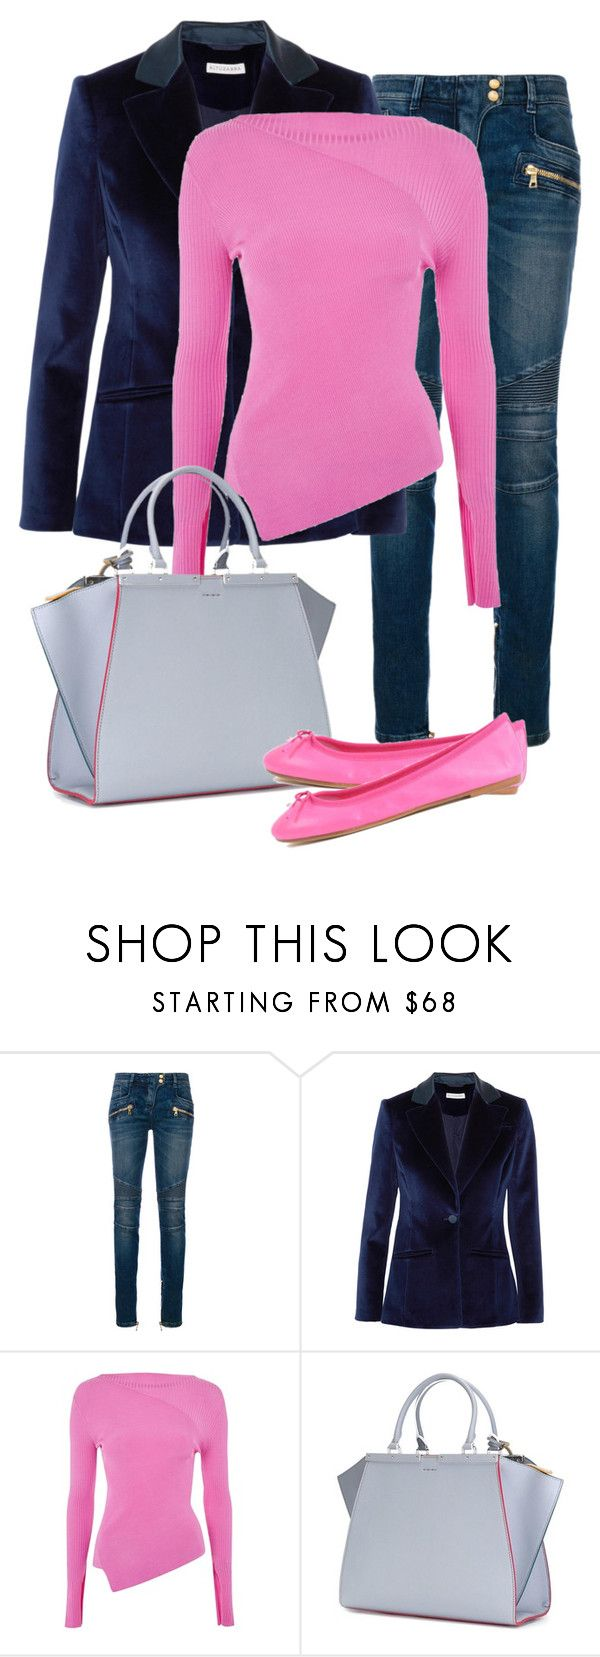 """Untitled #715"" by indirareeves on Polyvore featuring Balmain, Altuzarra, Topshop, Fendi and ANNA BAIGUERA"